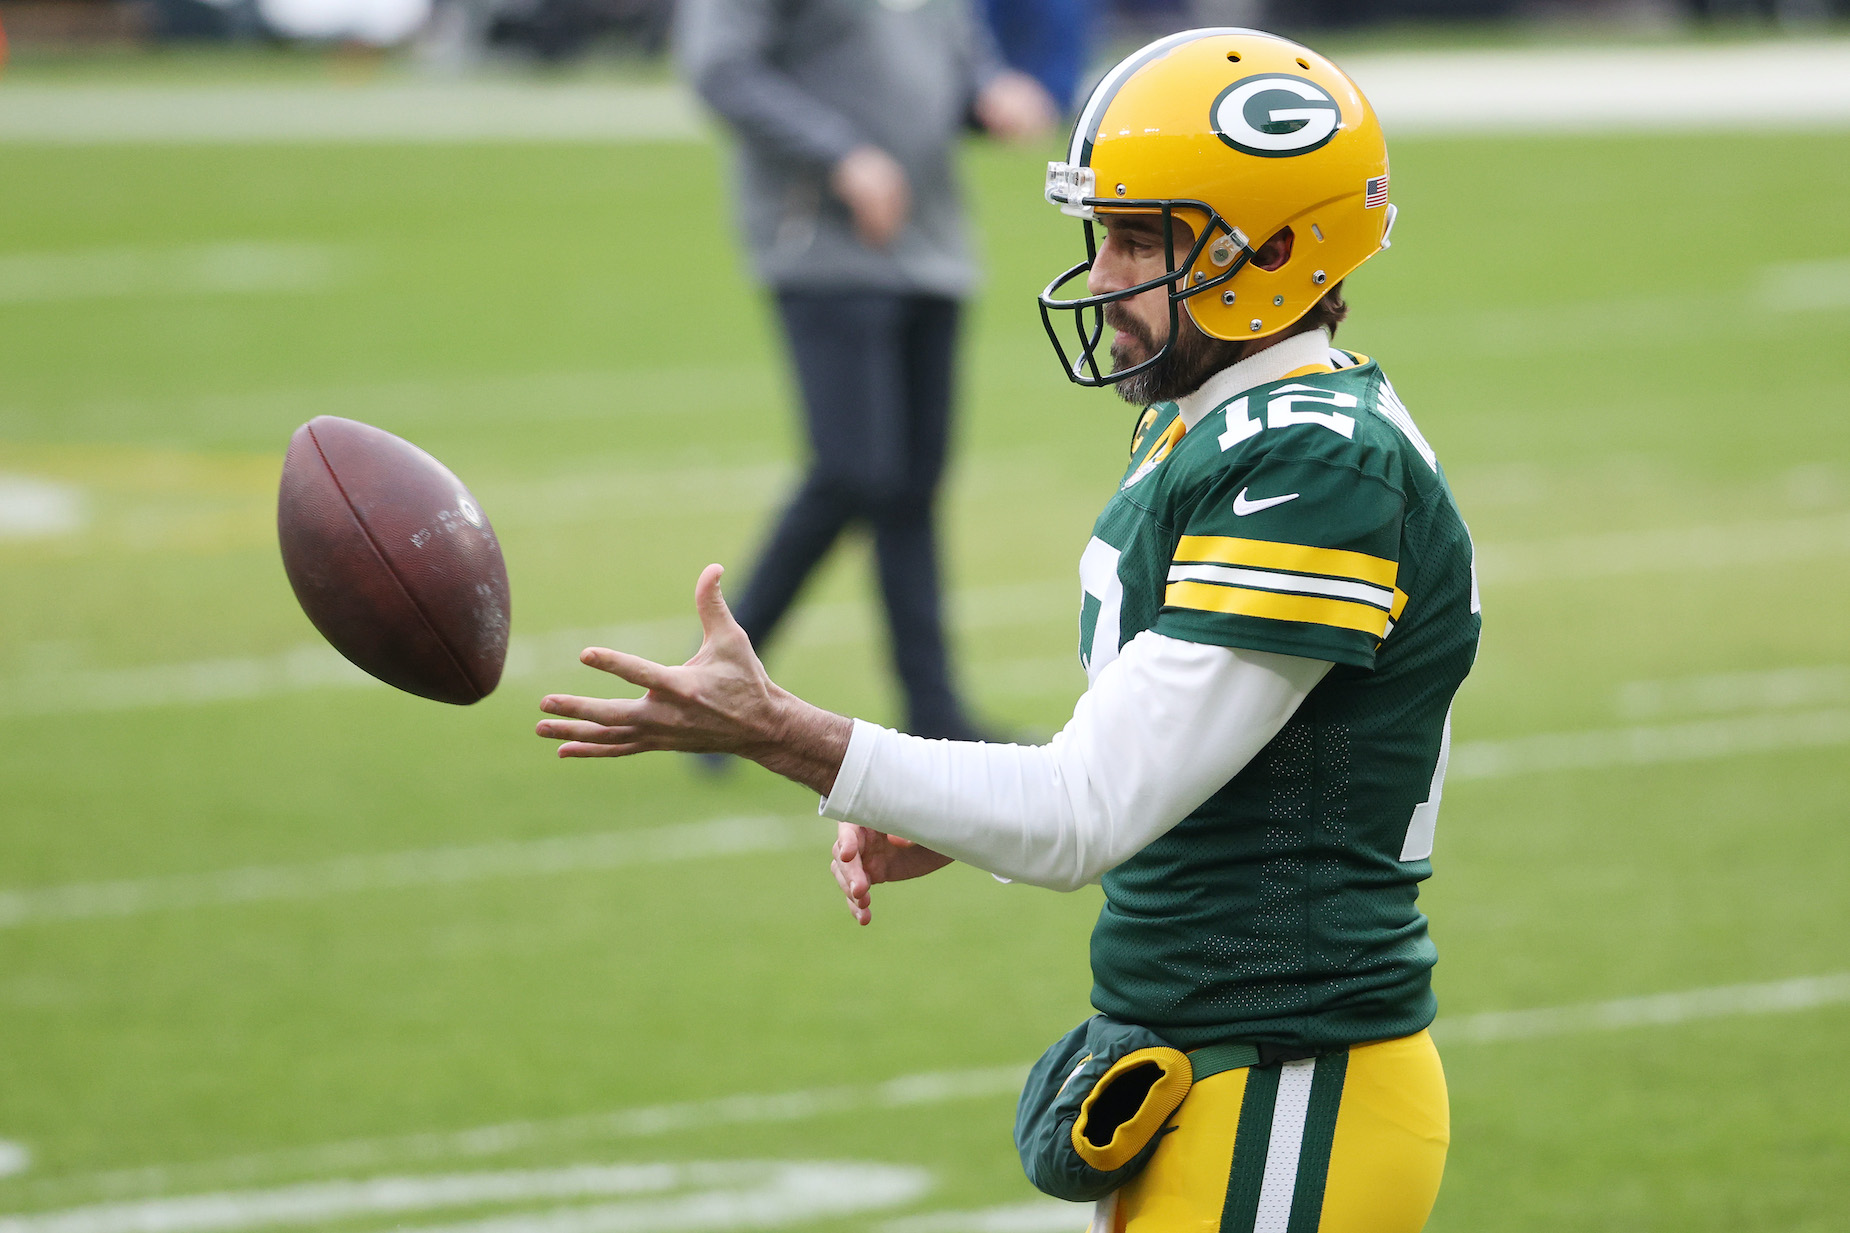 Green Bay Packers quarterback Aaron Rodgers during pregame warm-ups